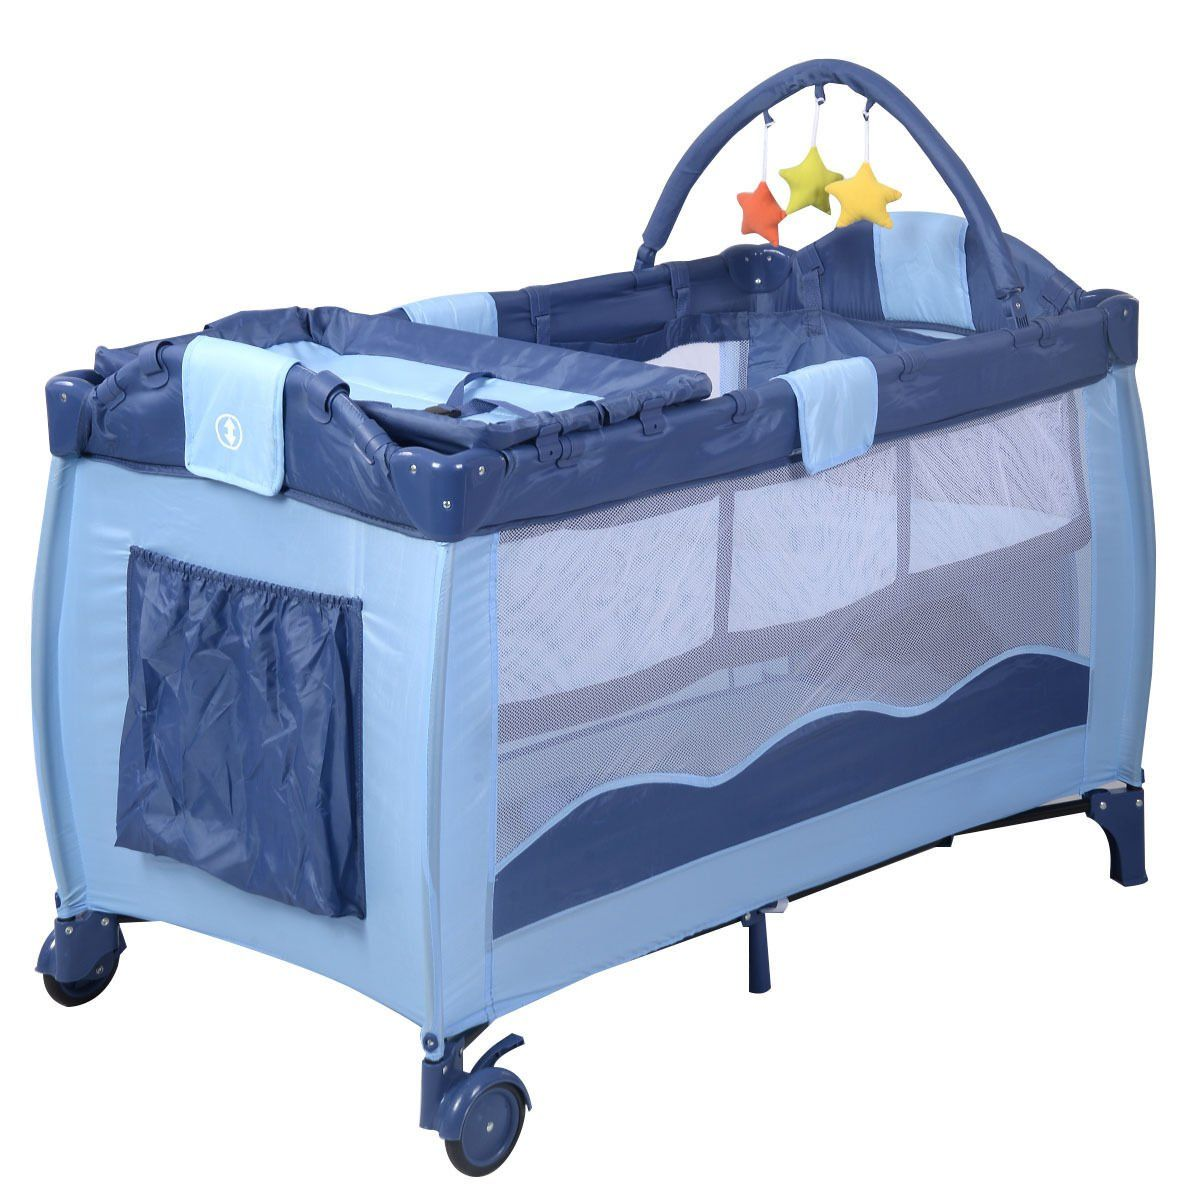 Baby cribs staten island - Baby Crib Playpen Playard Pack Travel Infant Bassinet Bed Foldable Blue Wanna Go